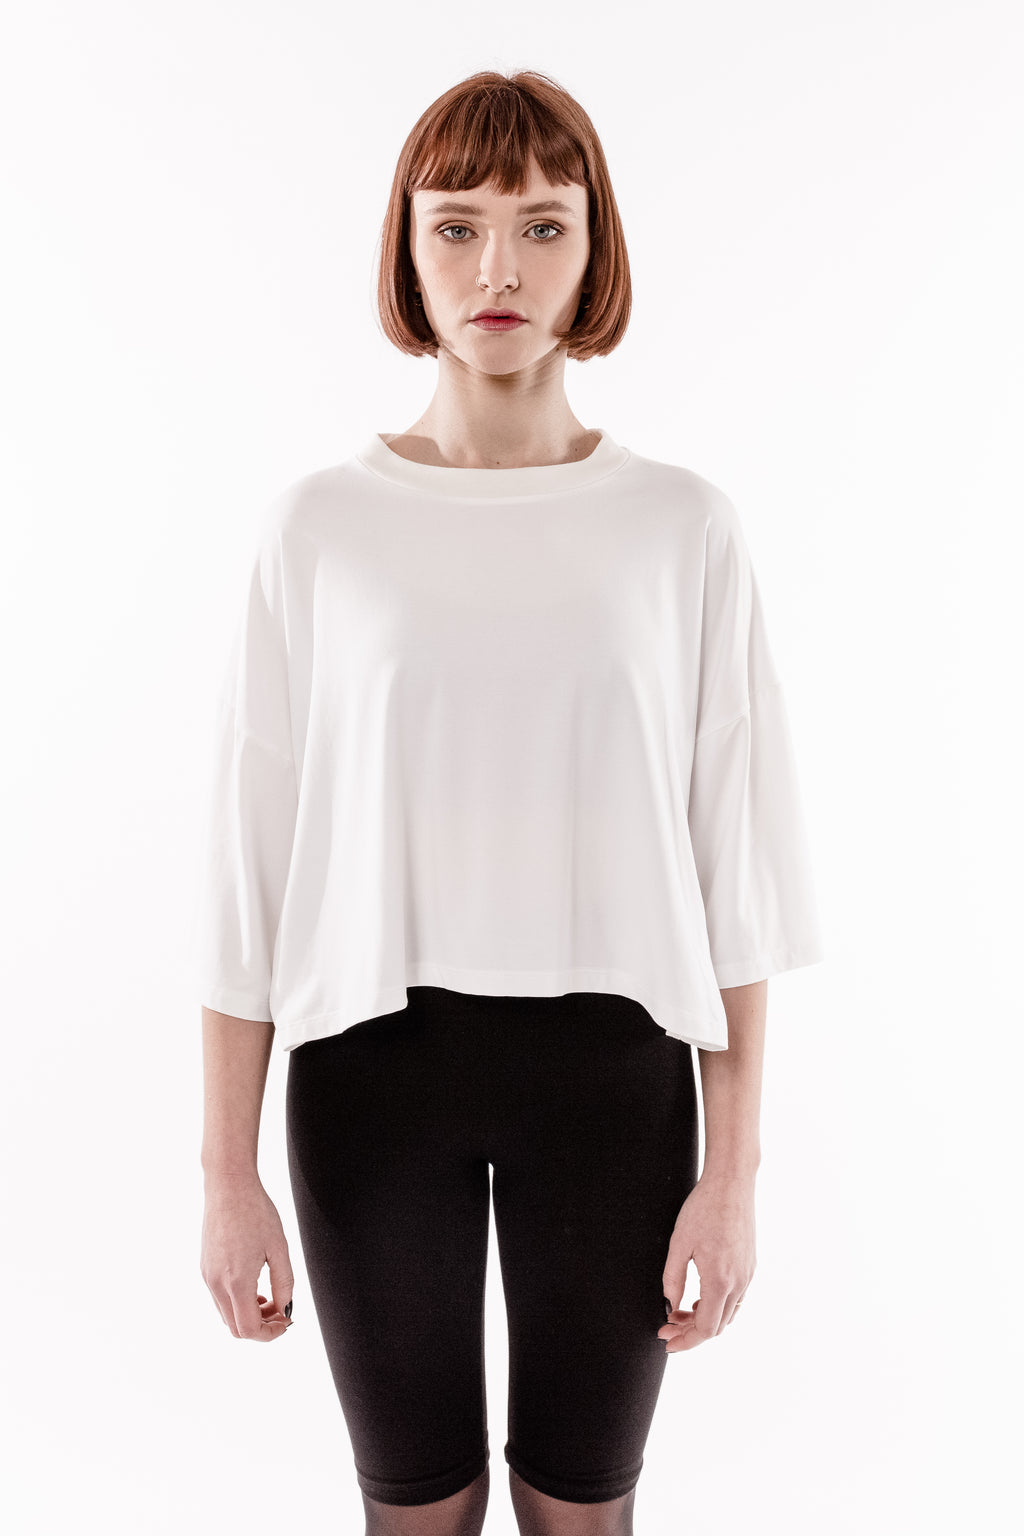 WHITE 'LIFE IS A CONCEPT' CROPPED TOP